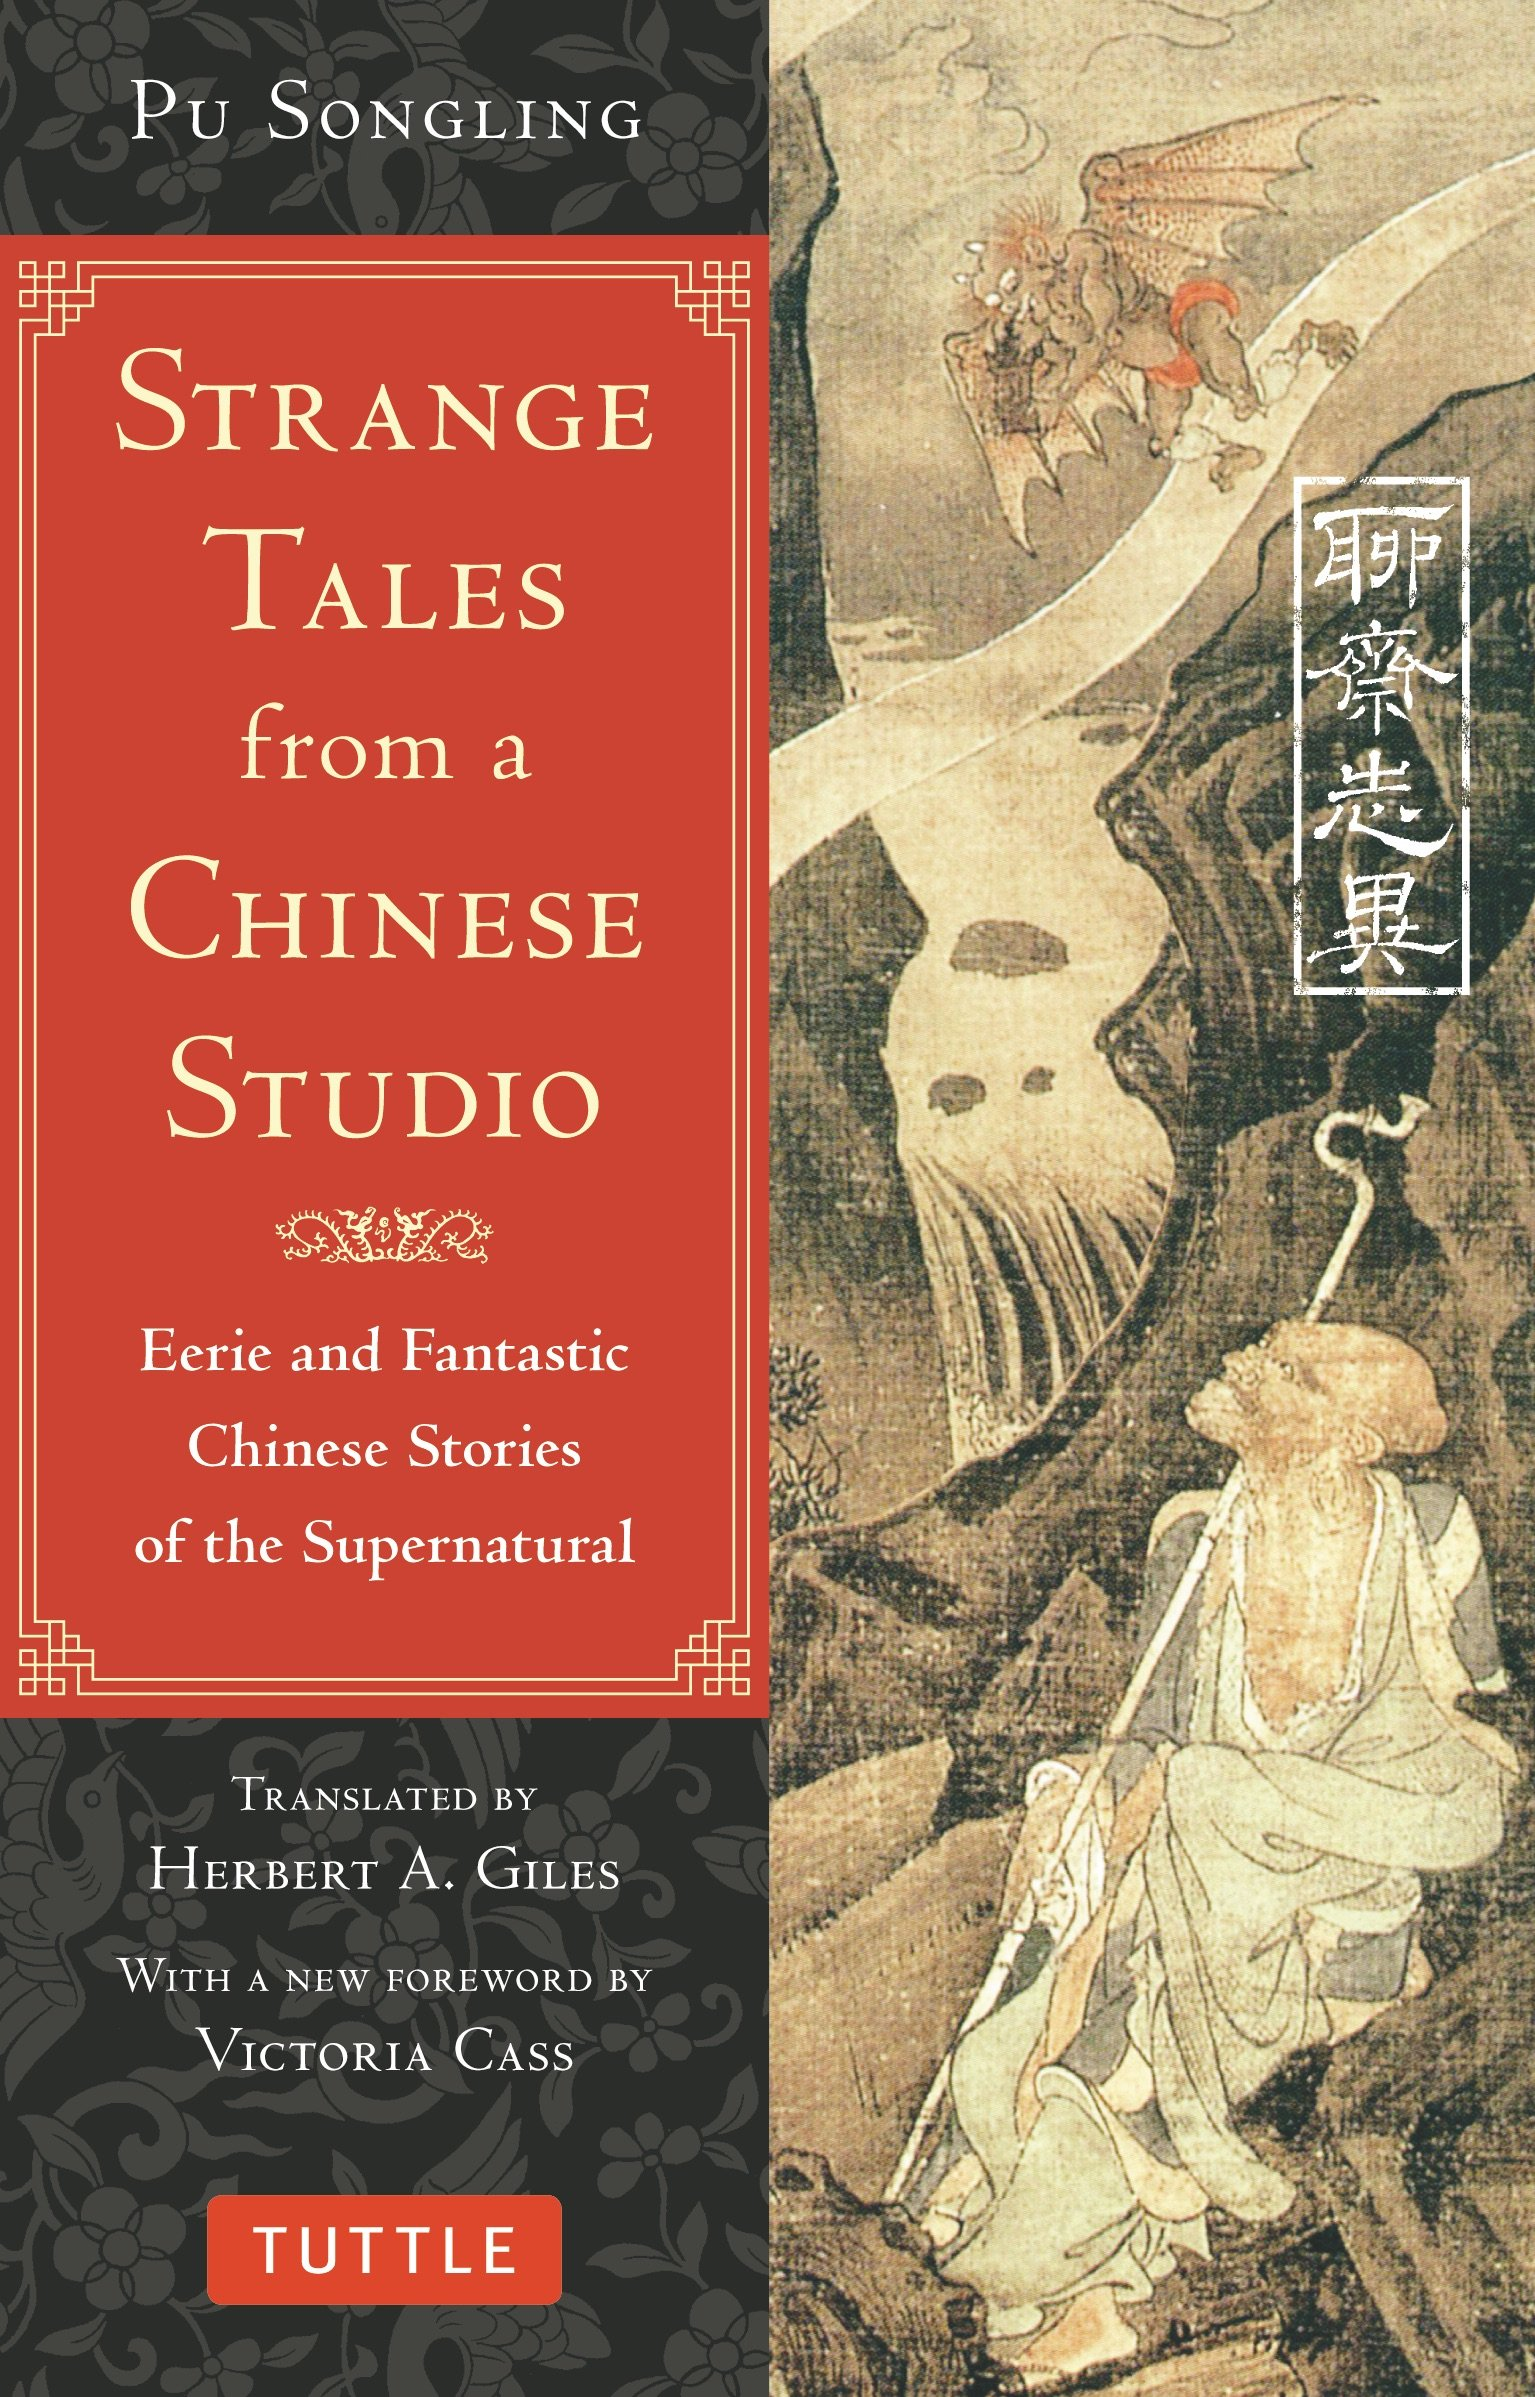 Strange Tales from a Chinese Studio: Eerie and Fantastic Chinese Stories of  the Supernatural Paperback – March 14, 2017